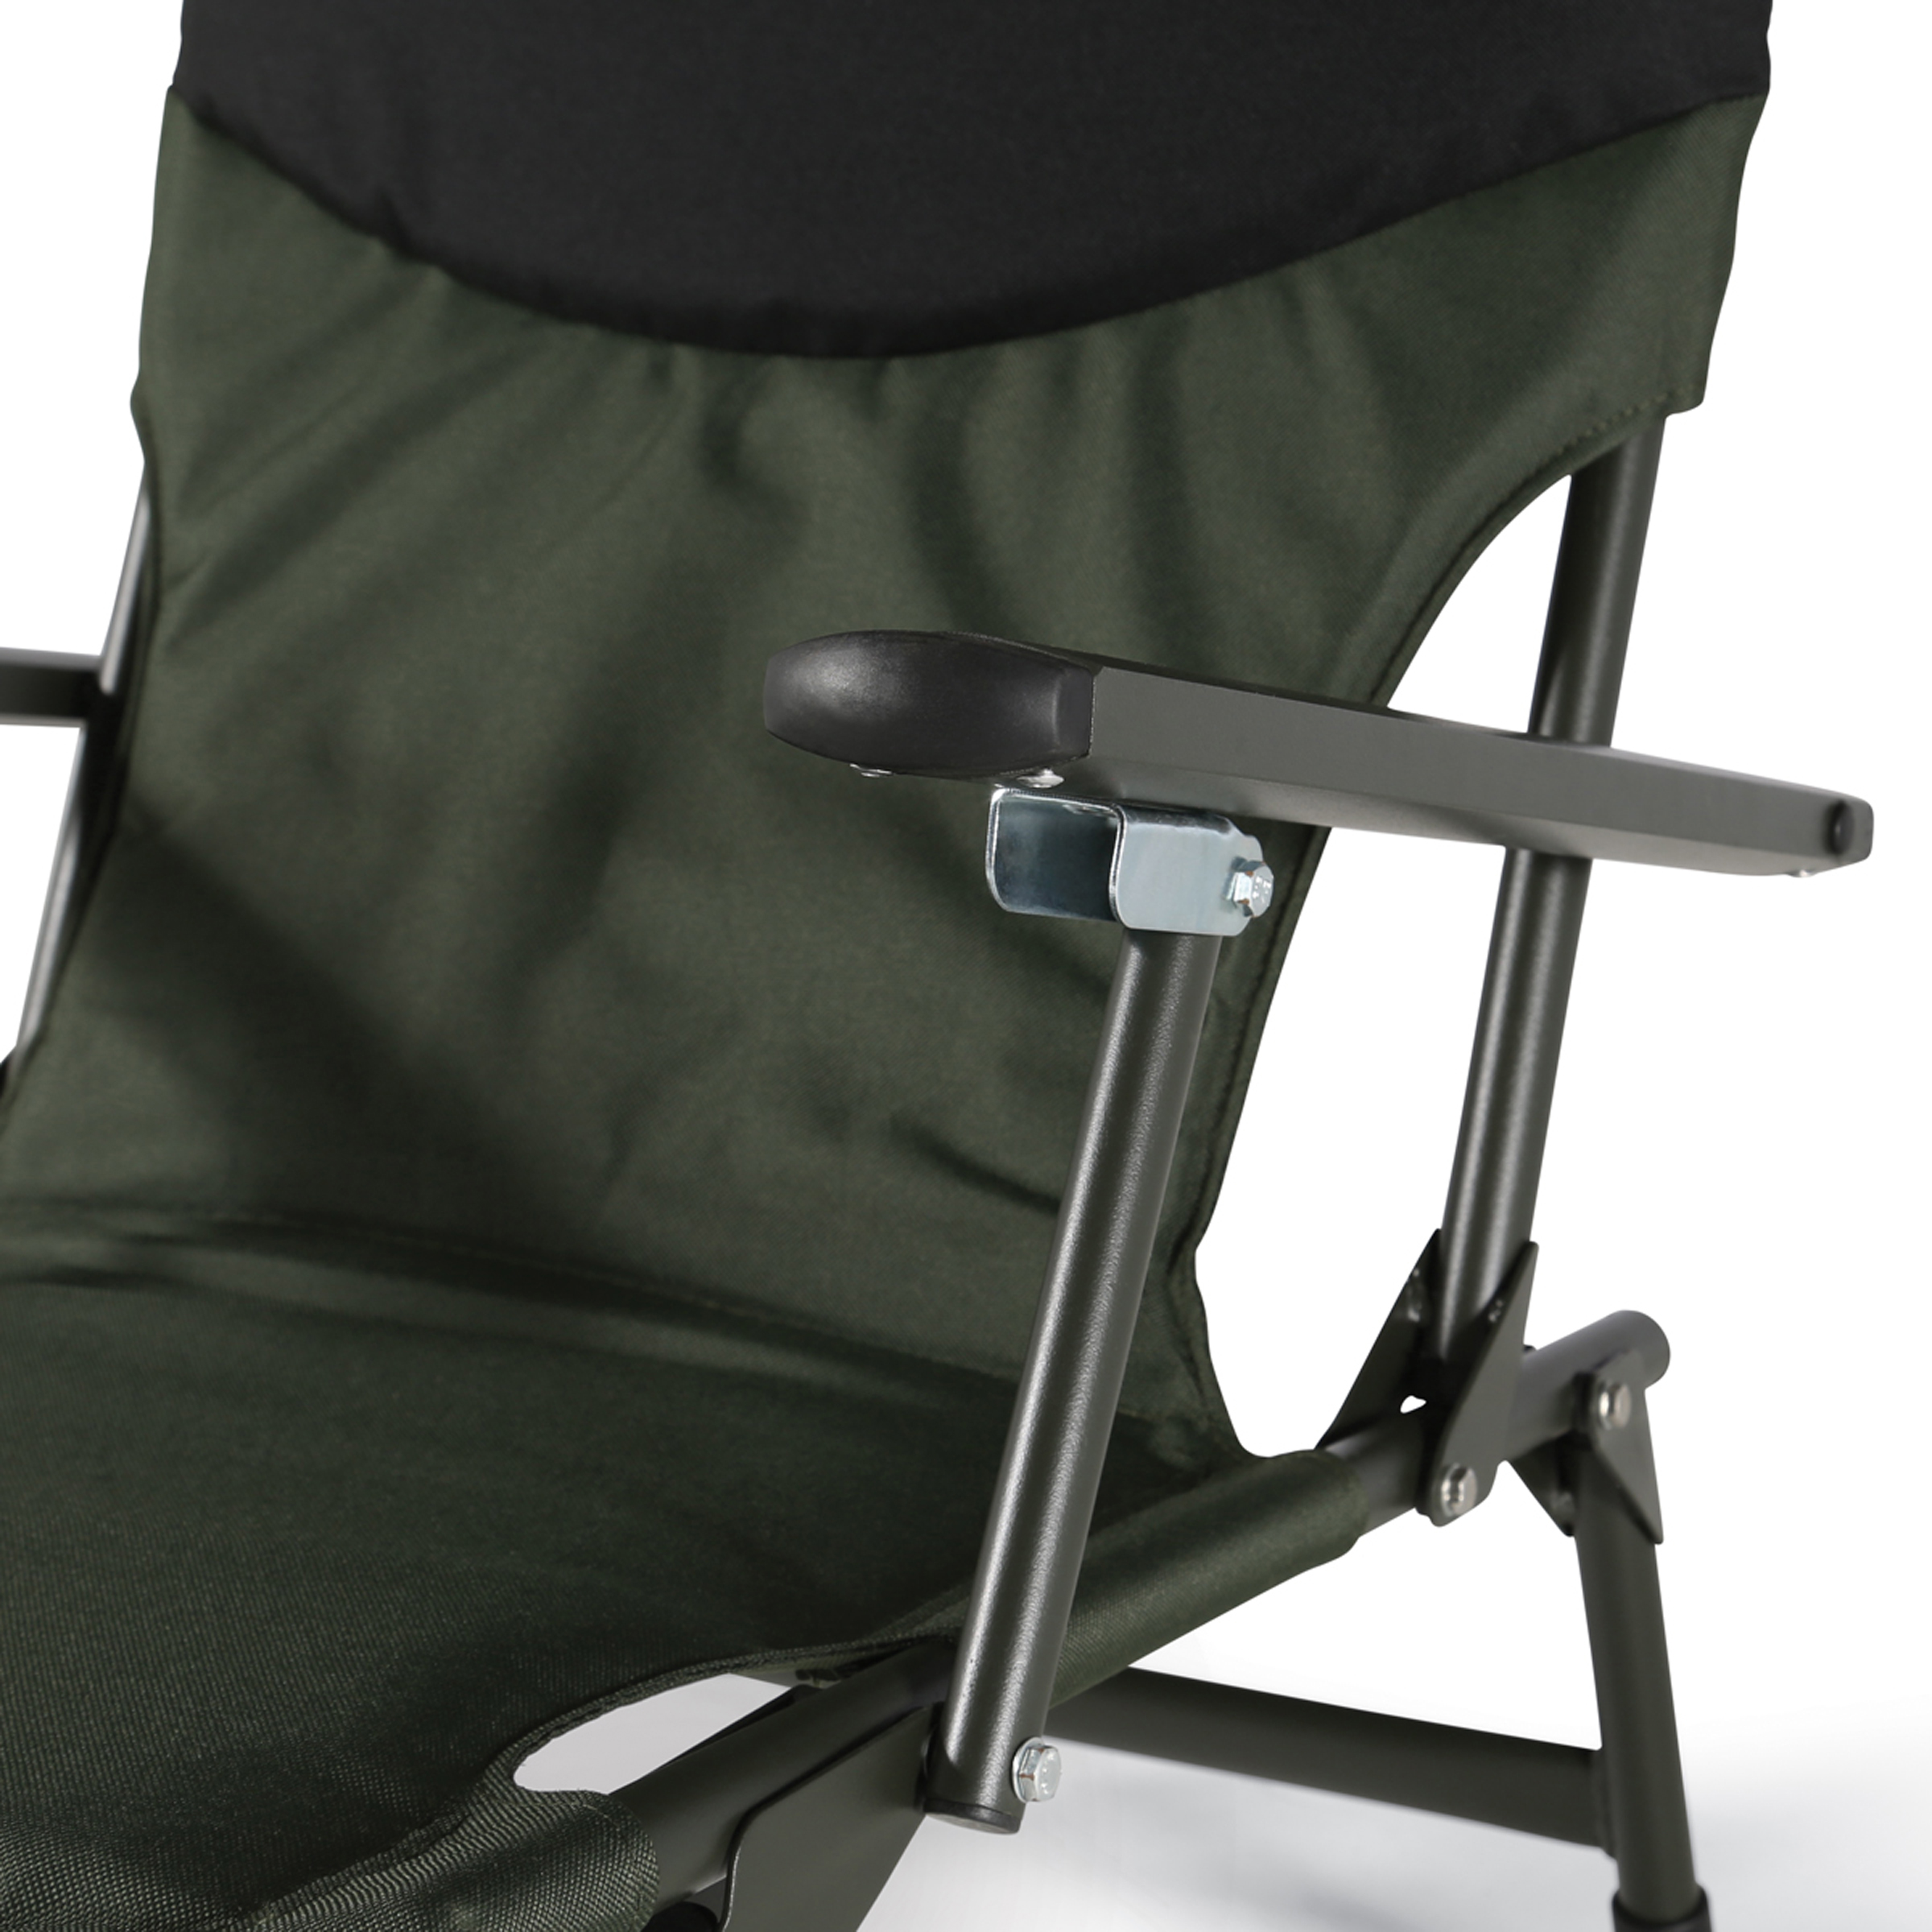 fishing chair with arms outdoor steel design cyprinus folding seat arm rests carp